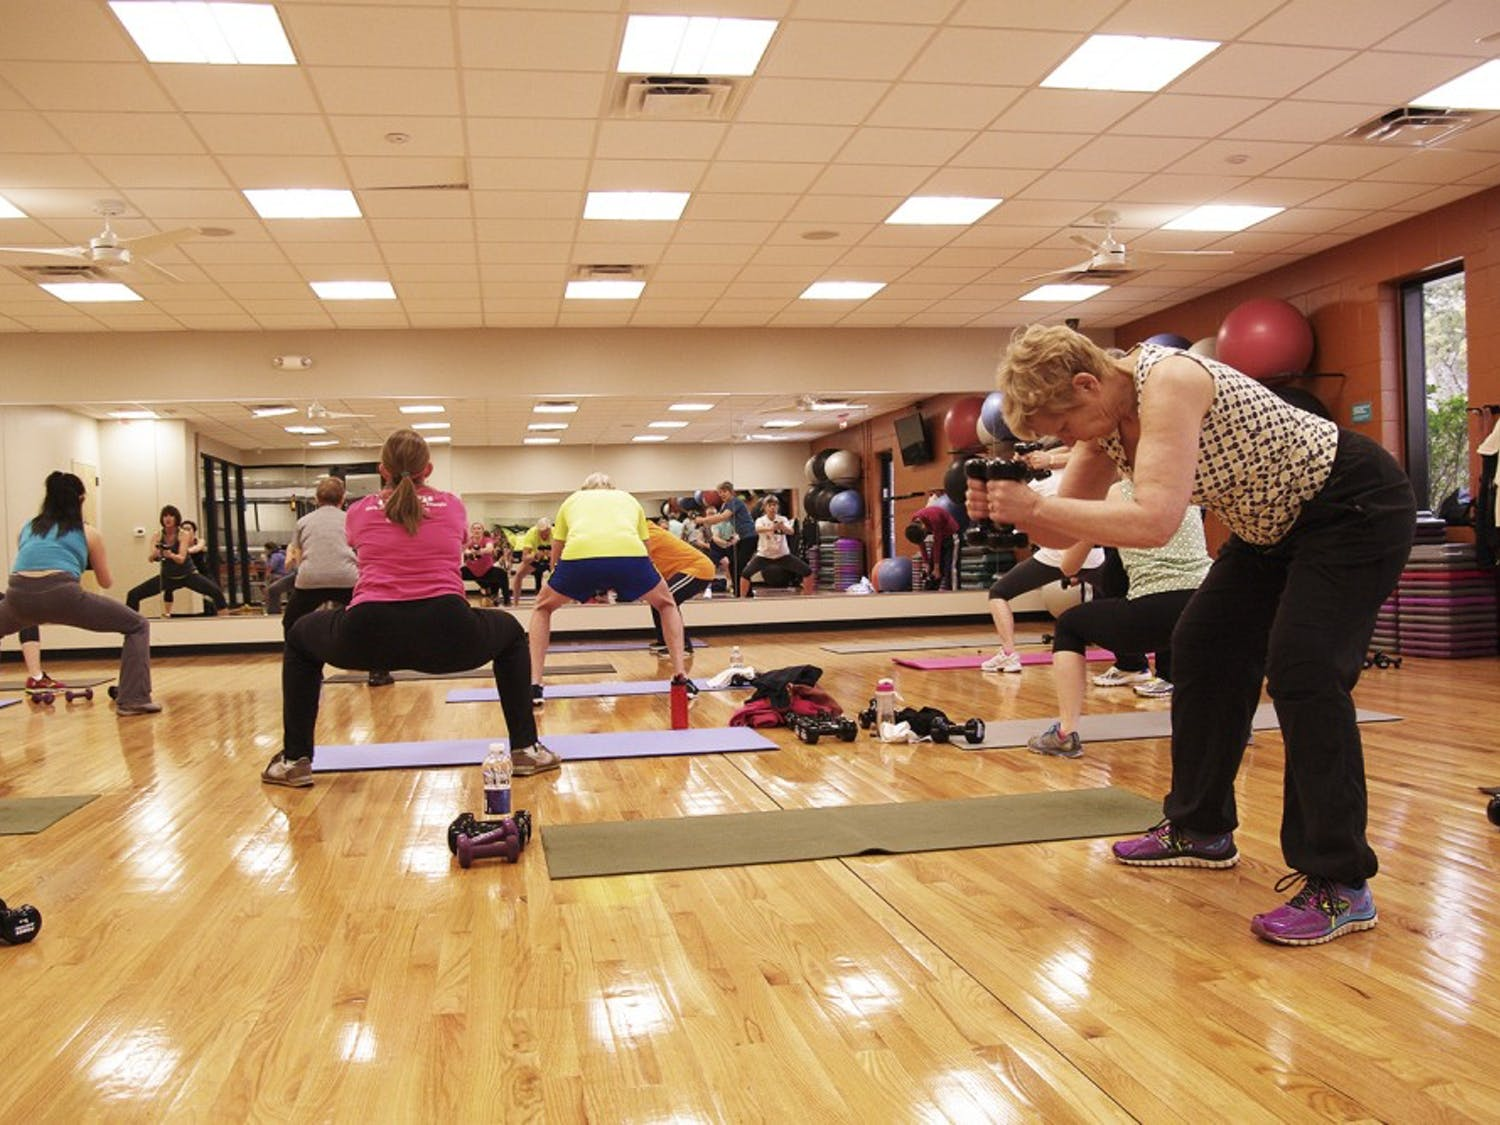 YMCA members attend a total body strength class in the main studio on March 23.